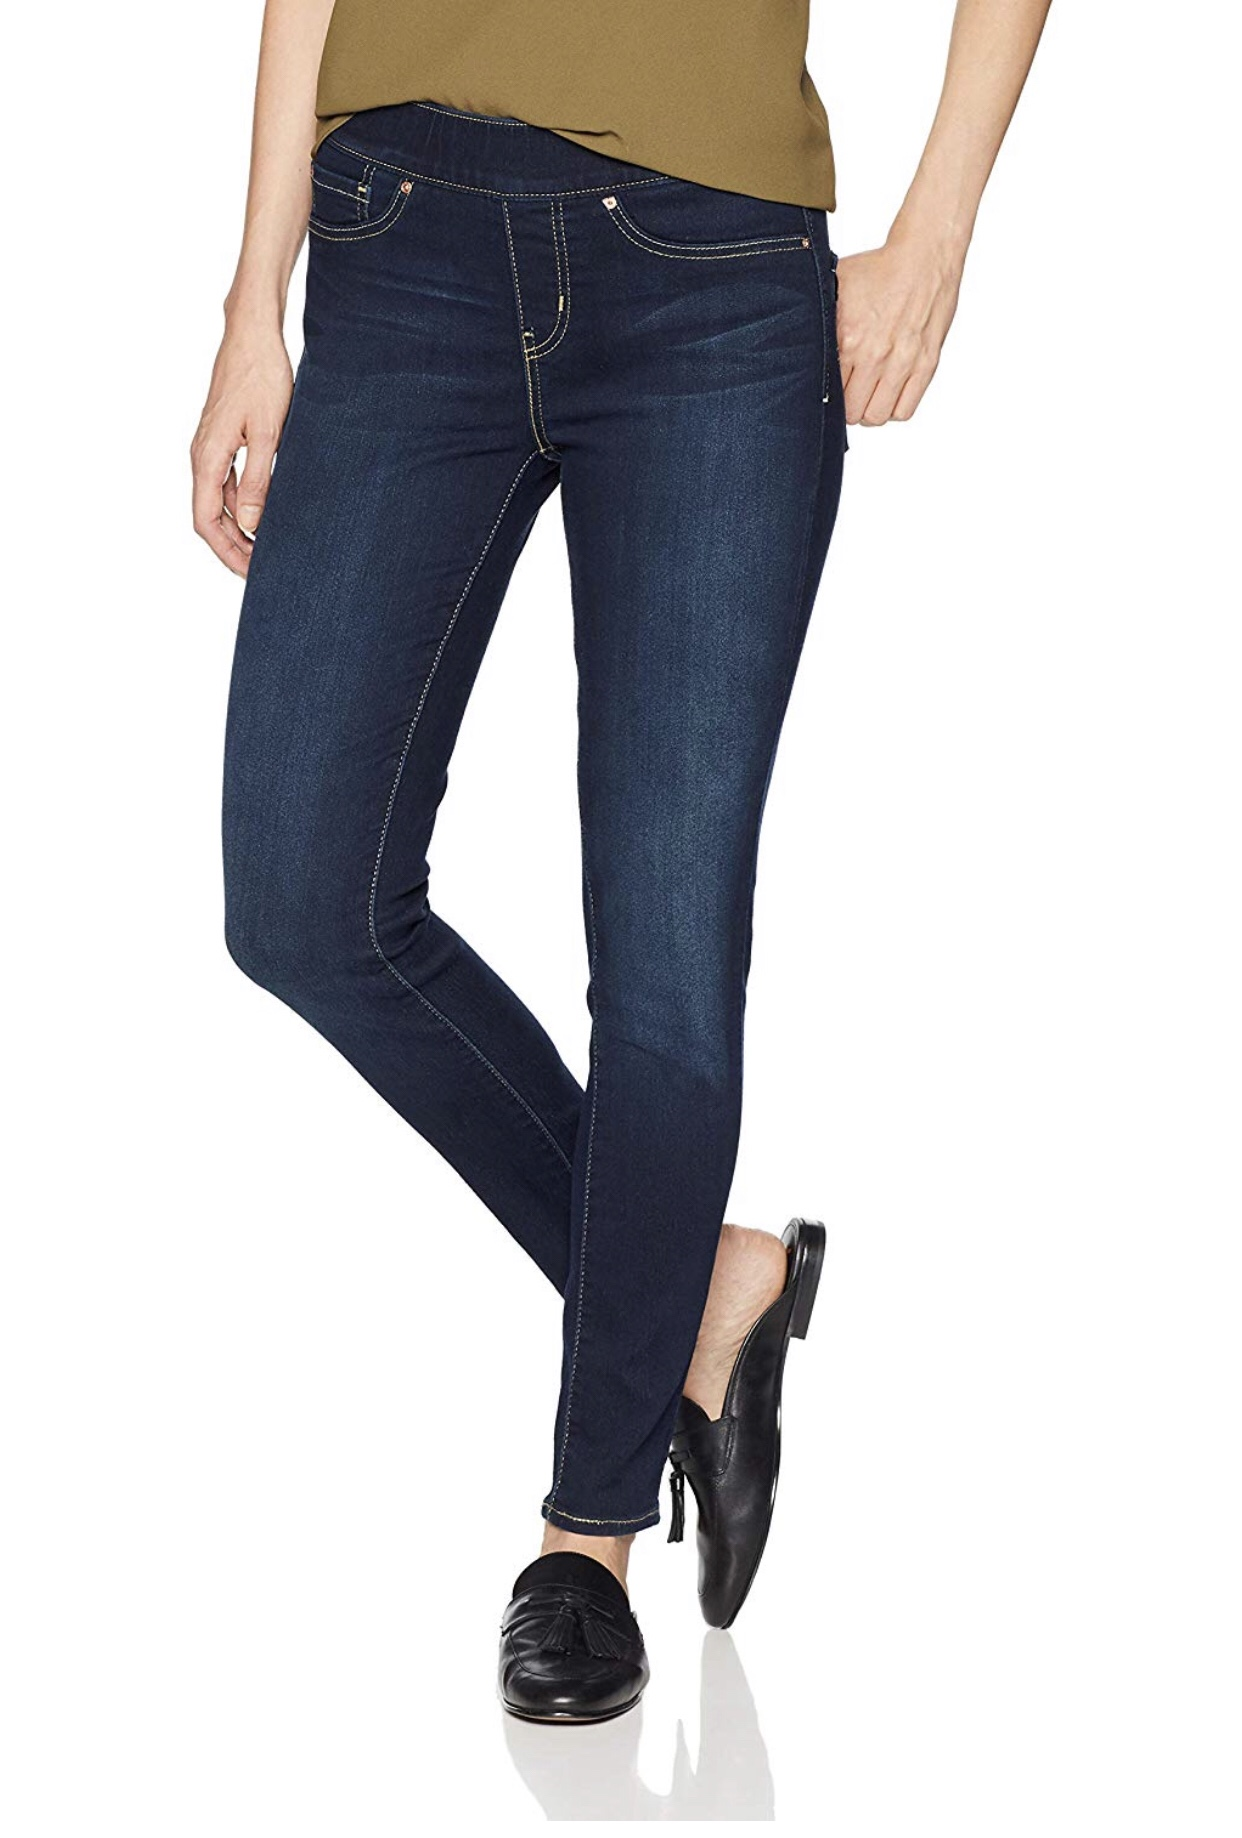 Friday Favorites - Levi jeans - JK Style